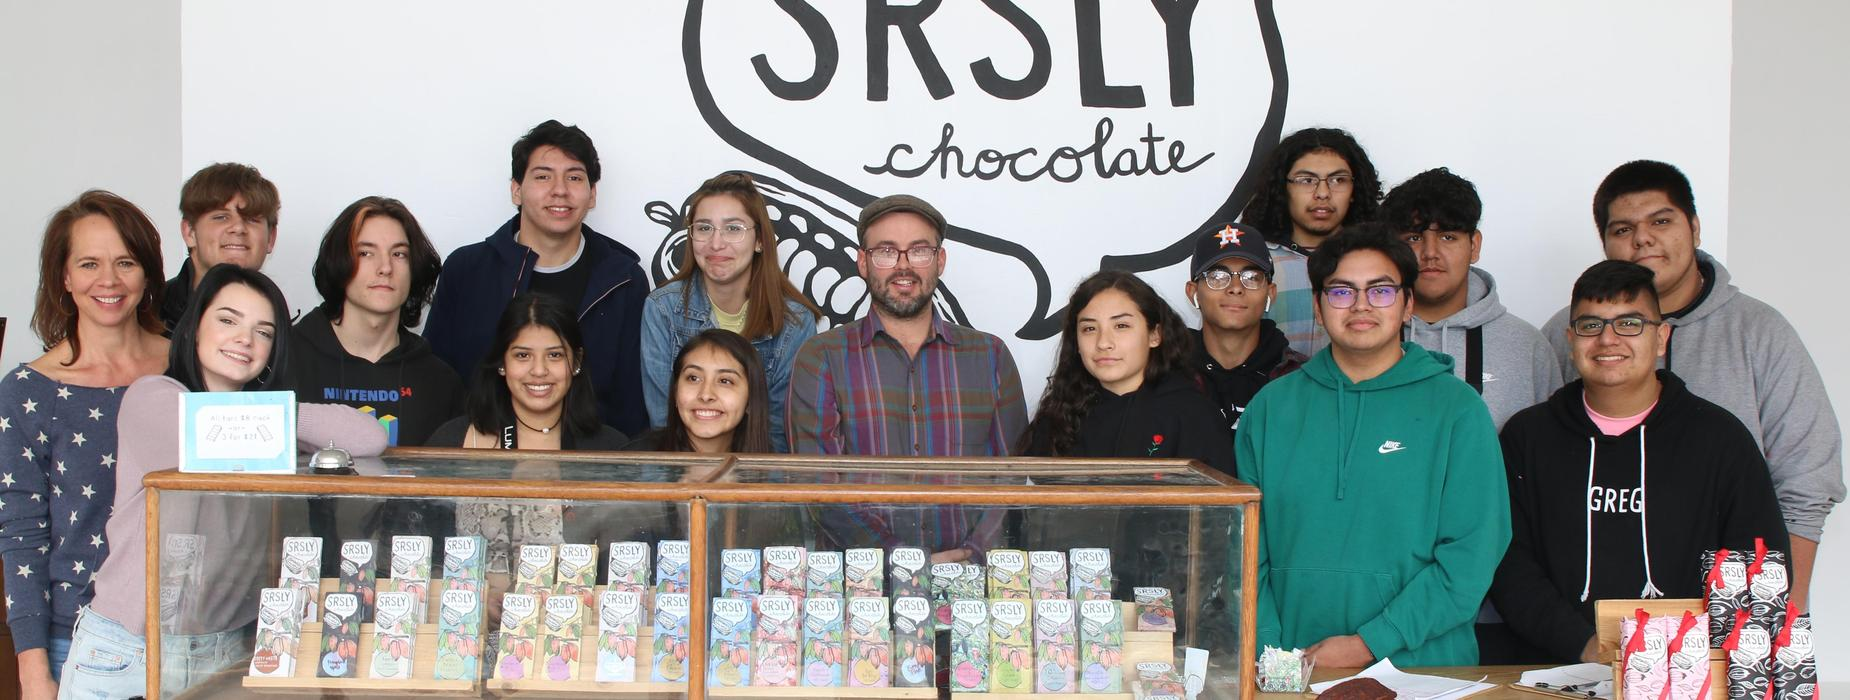 Field Trip to SRSLY Chocolate